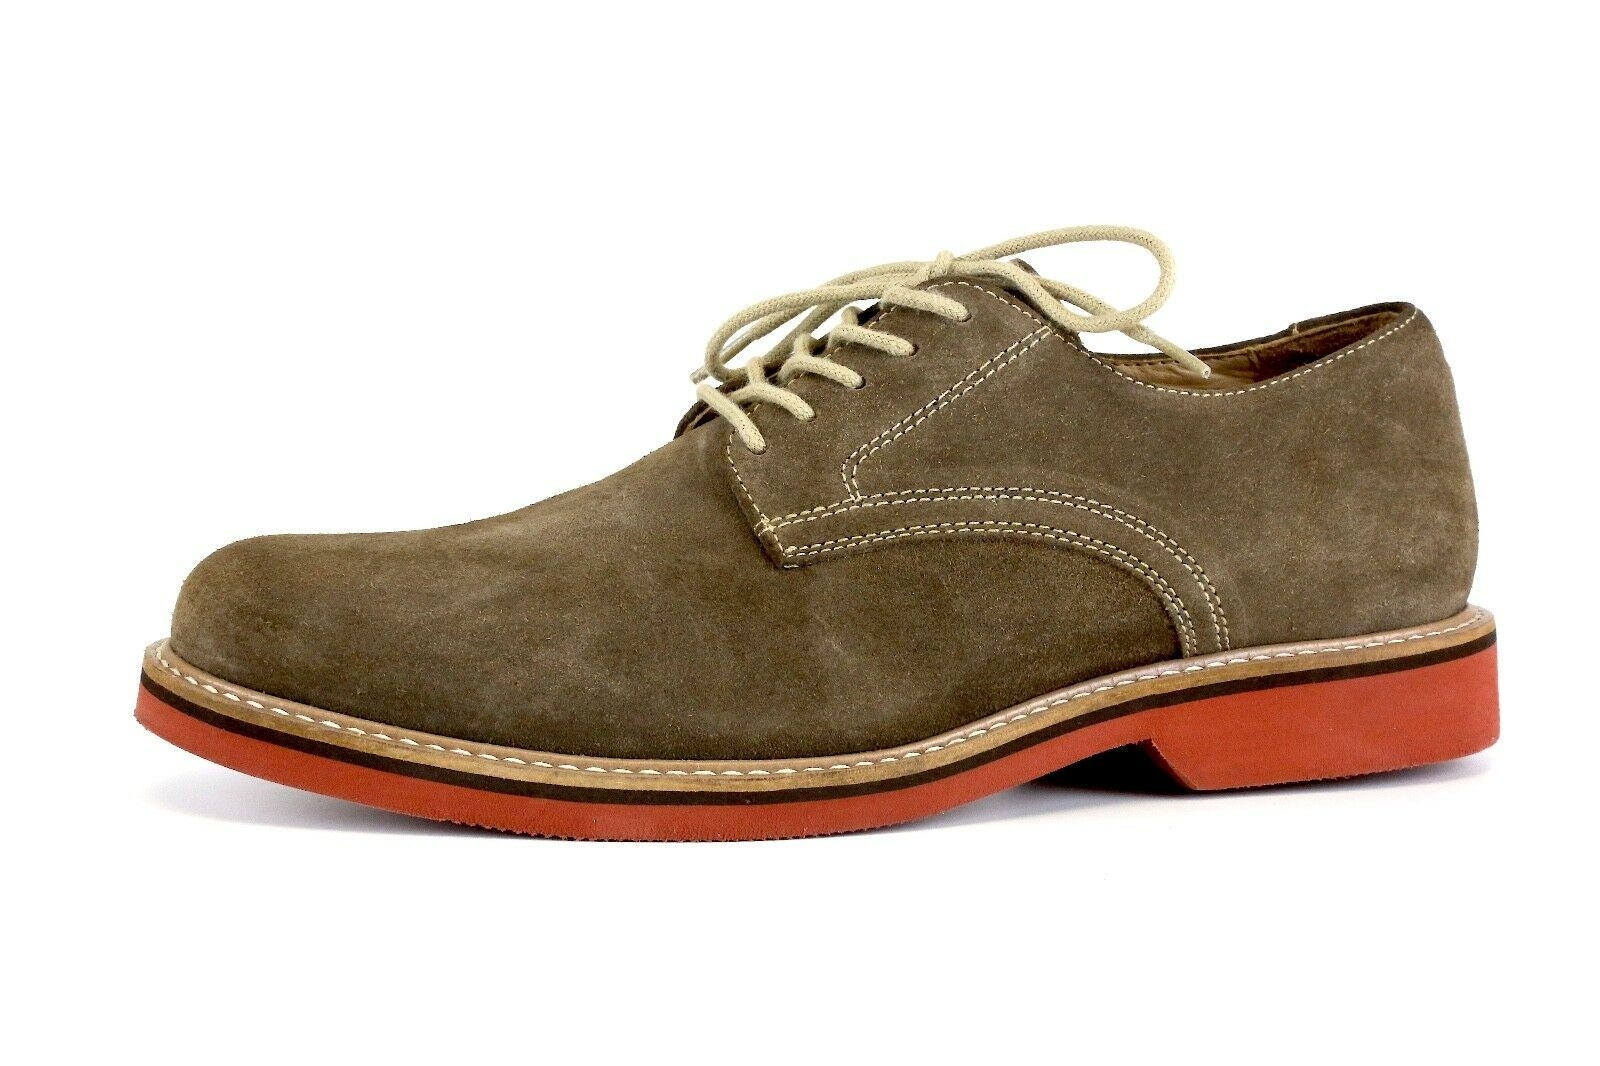 1901 marrone Suede Uomo Lace Up Oxfords Taglia 7.5M 8434